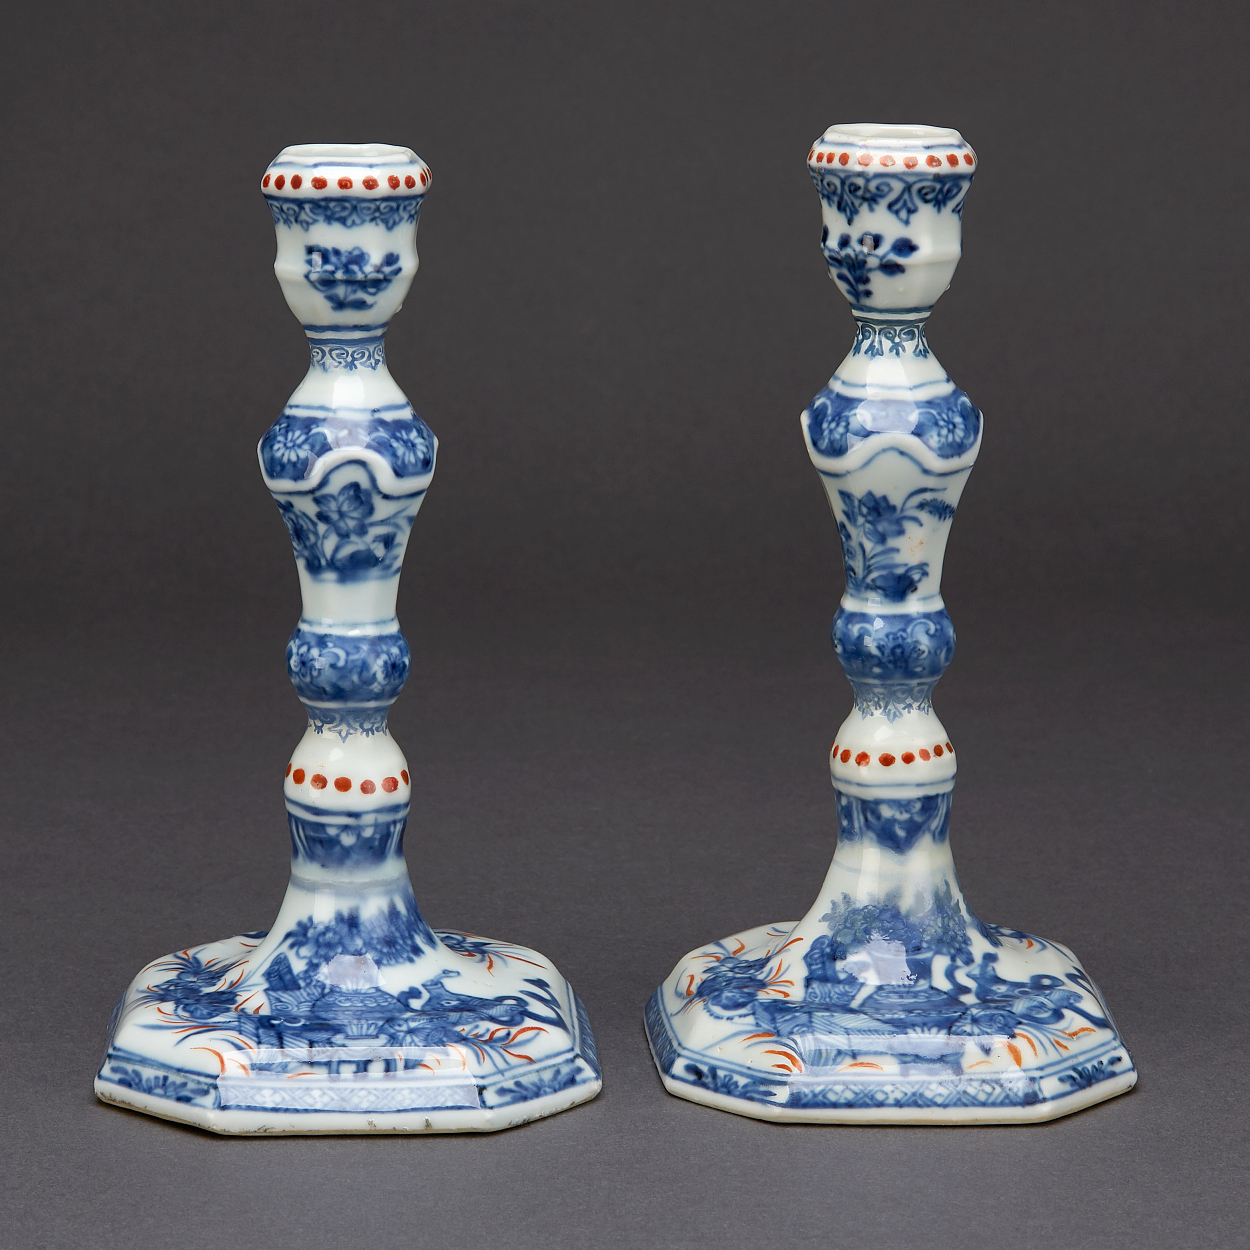 A Pair of Blue and White Candlesticks